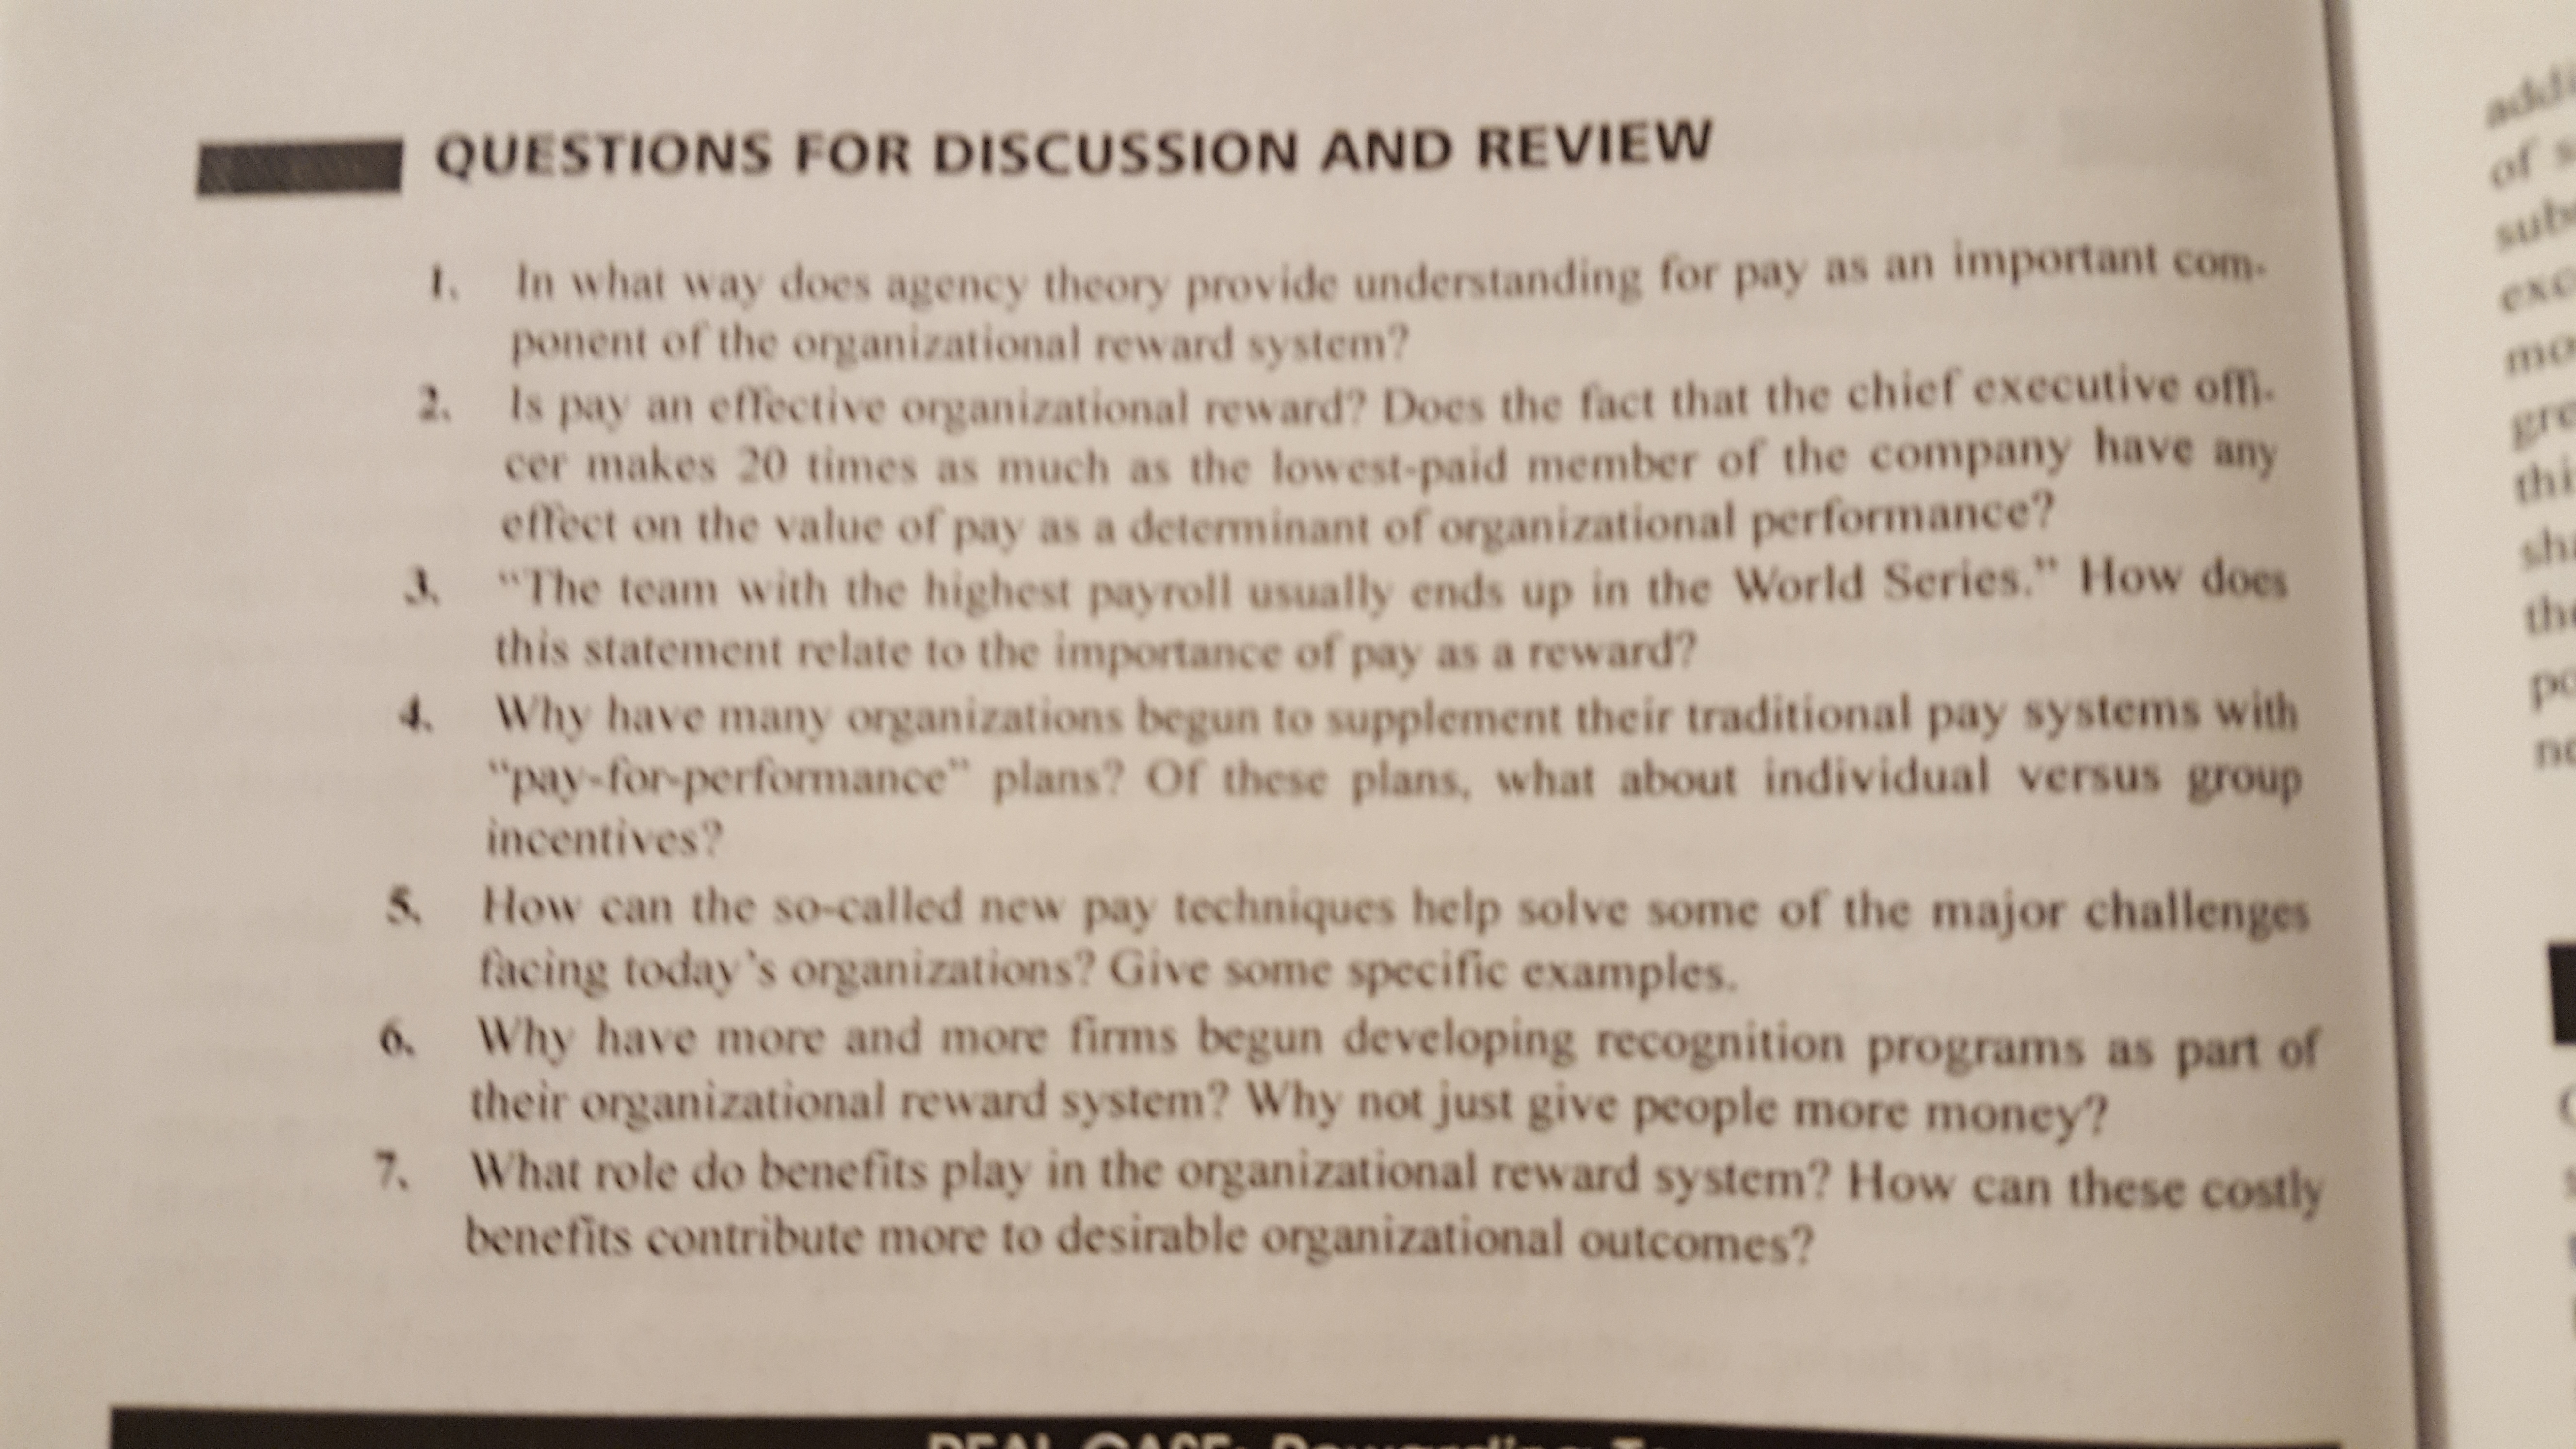 """QUESTIONS FOR DISCUSSION AND REVIEW t. In what way does agency theory provide understanding for pay as an important com ponent of the organizational reward system? mo 2 Is pay an effective organizational reward? Does the fact that the chief executive ofm. cer makes 20 times as much as the lowest-paid member of the company have any effect on the value of pay as a determinant of organizational performance? The team with the highest payroll usually ends up in the World Series."""" How does this statement relate to the importance of pay as a reward? thi sh the po nc 4 Why have many organizations begun to supplement their traditional pay systems with """"pay-for-performance"""" plans? Of these plans, what about individual versus group incentives? S. How can the so-called new pay techniques help solve some of the major challenges . Why have more and more firms begun developing recognition programs as part of 7. What role do benefits play in the organizational reward system? How can these costly facing today's organizations? Give some specific examples. their organizational reward system? Why not just give people more money? benefits contribute more to desirable organizational outcomes?"""